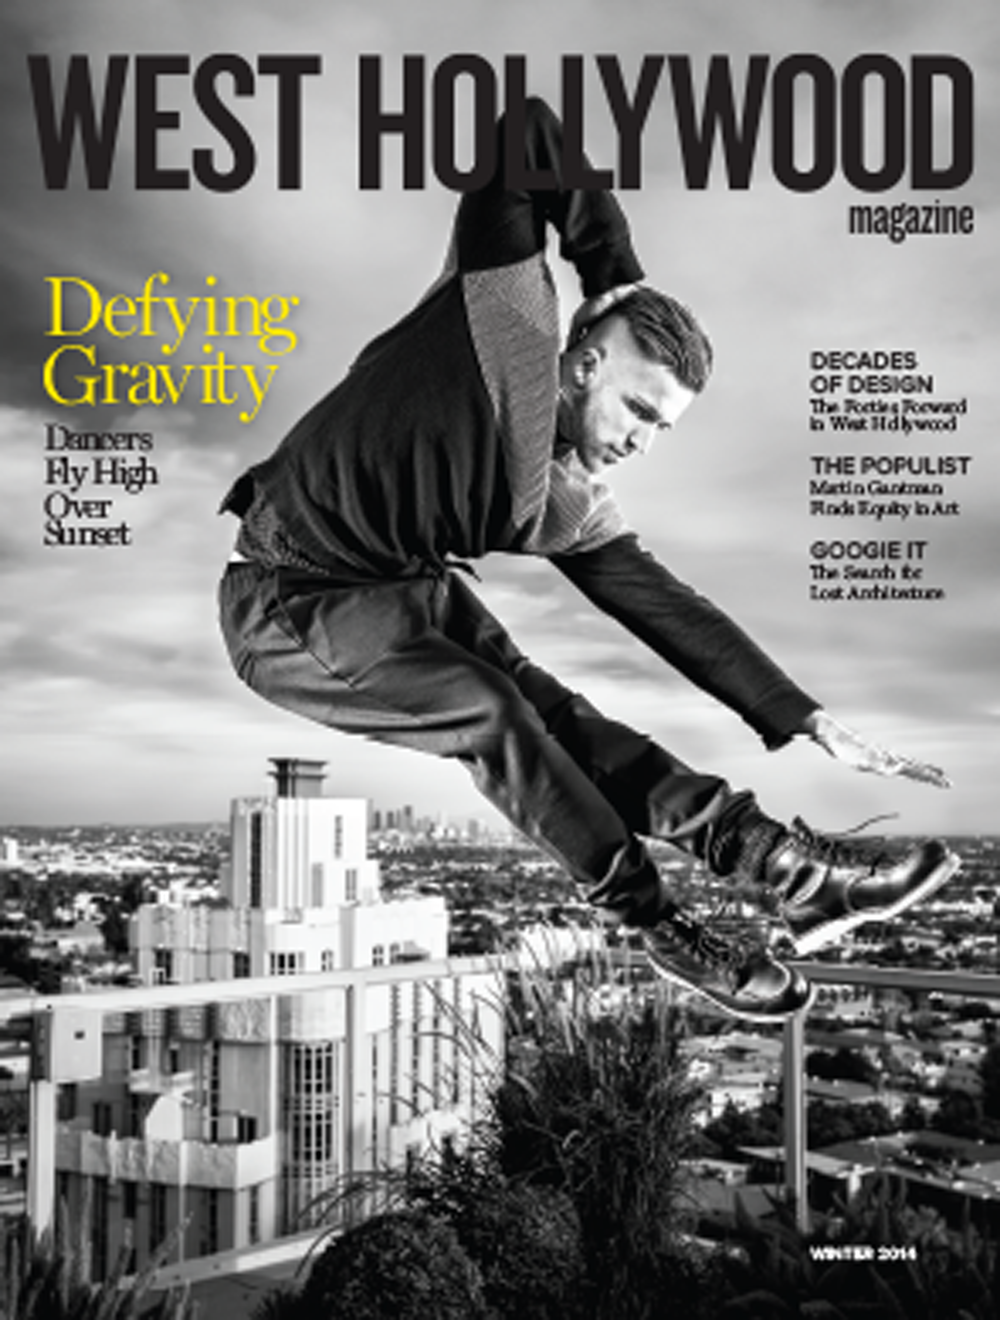 WEST HOLLYWOOD MAGAZINE-THE GETAWAY (PRODUCER/PHOTO EDITOR)